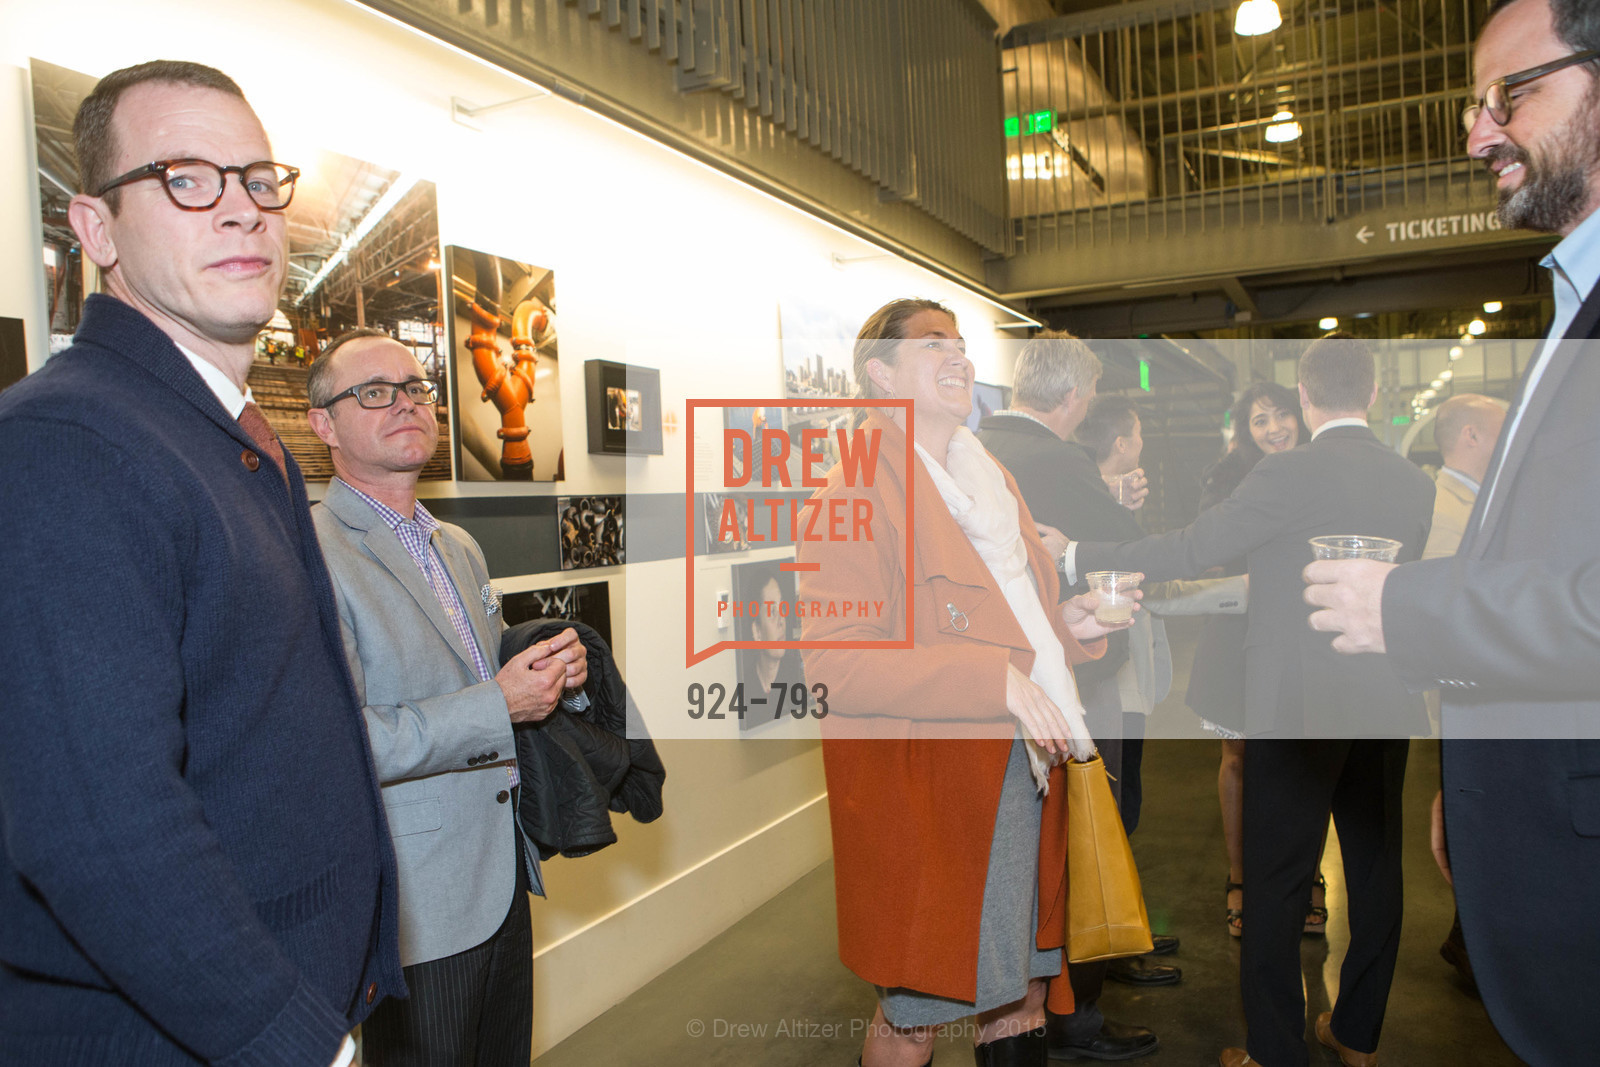 Benjamin Thompson, Grant Kalinowski, Tina Myers, Justin Bank, SF BRAVO CLUB Sneak Peek at the EXPLORATORIUM, US, April 23rd, 2015,Drew Altizer, Drew Altizer Photography, full-service agency, private events, San Francisco photographer, photographer california